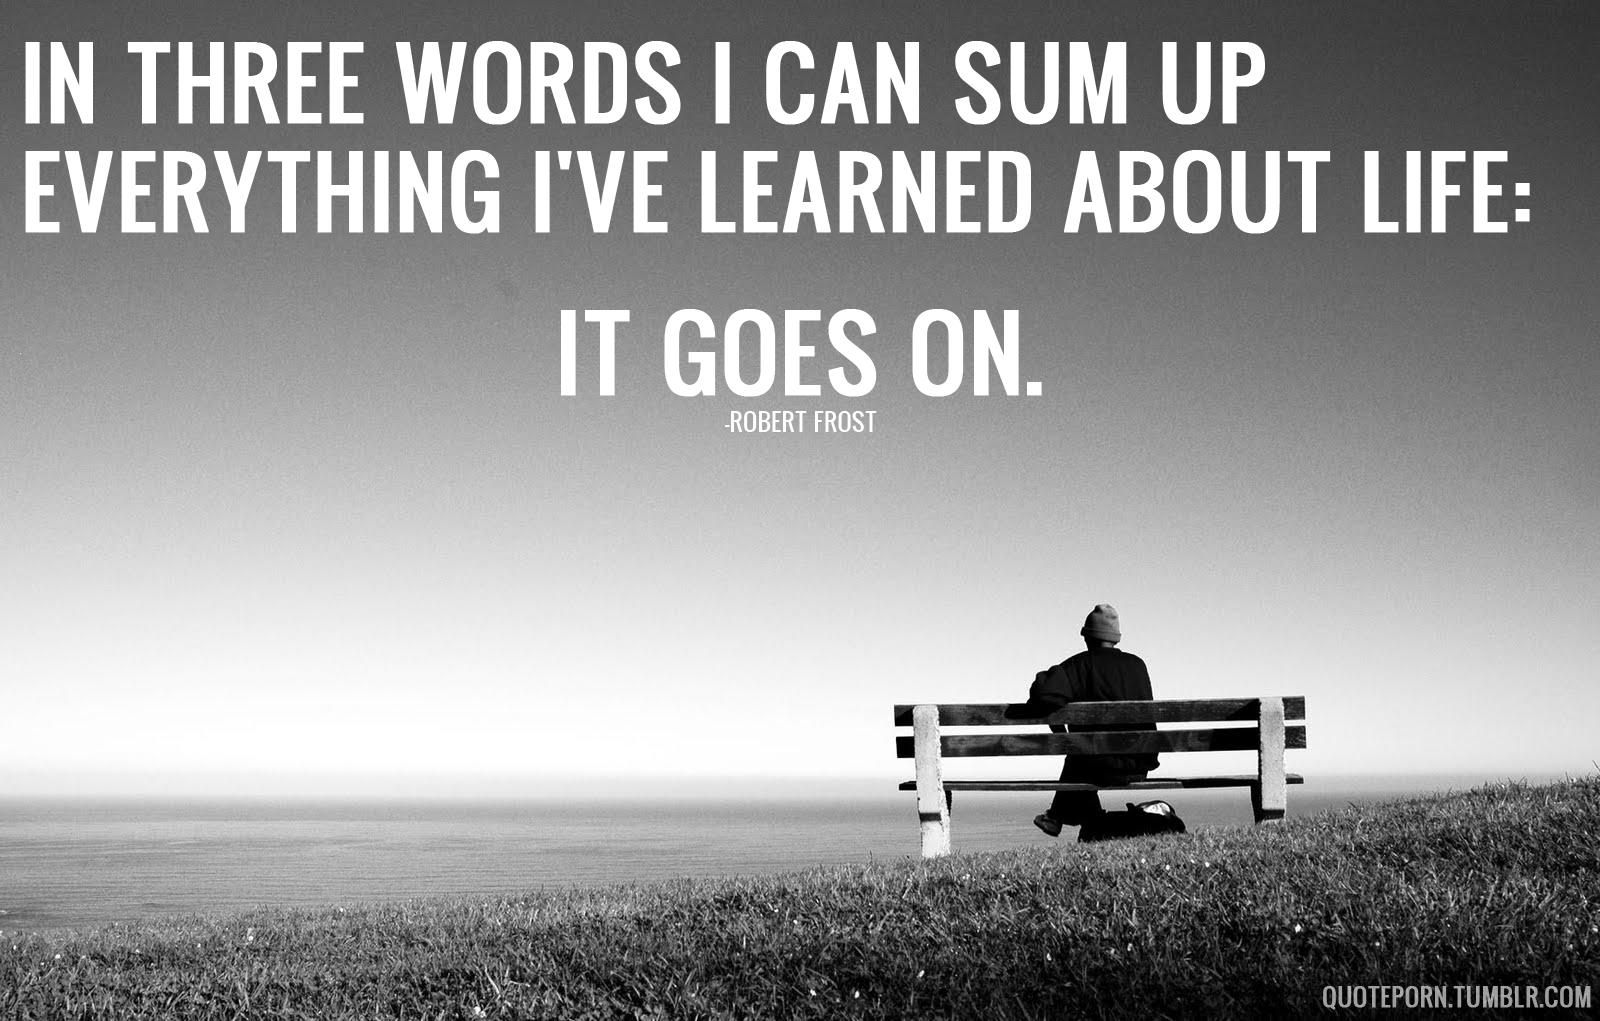 In Three Words I Can Sum Up Everything I Ve Learned About Life Robert Frost 1600x1021 Wise Quotes About Life Wisdom Quotes Life Words